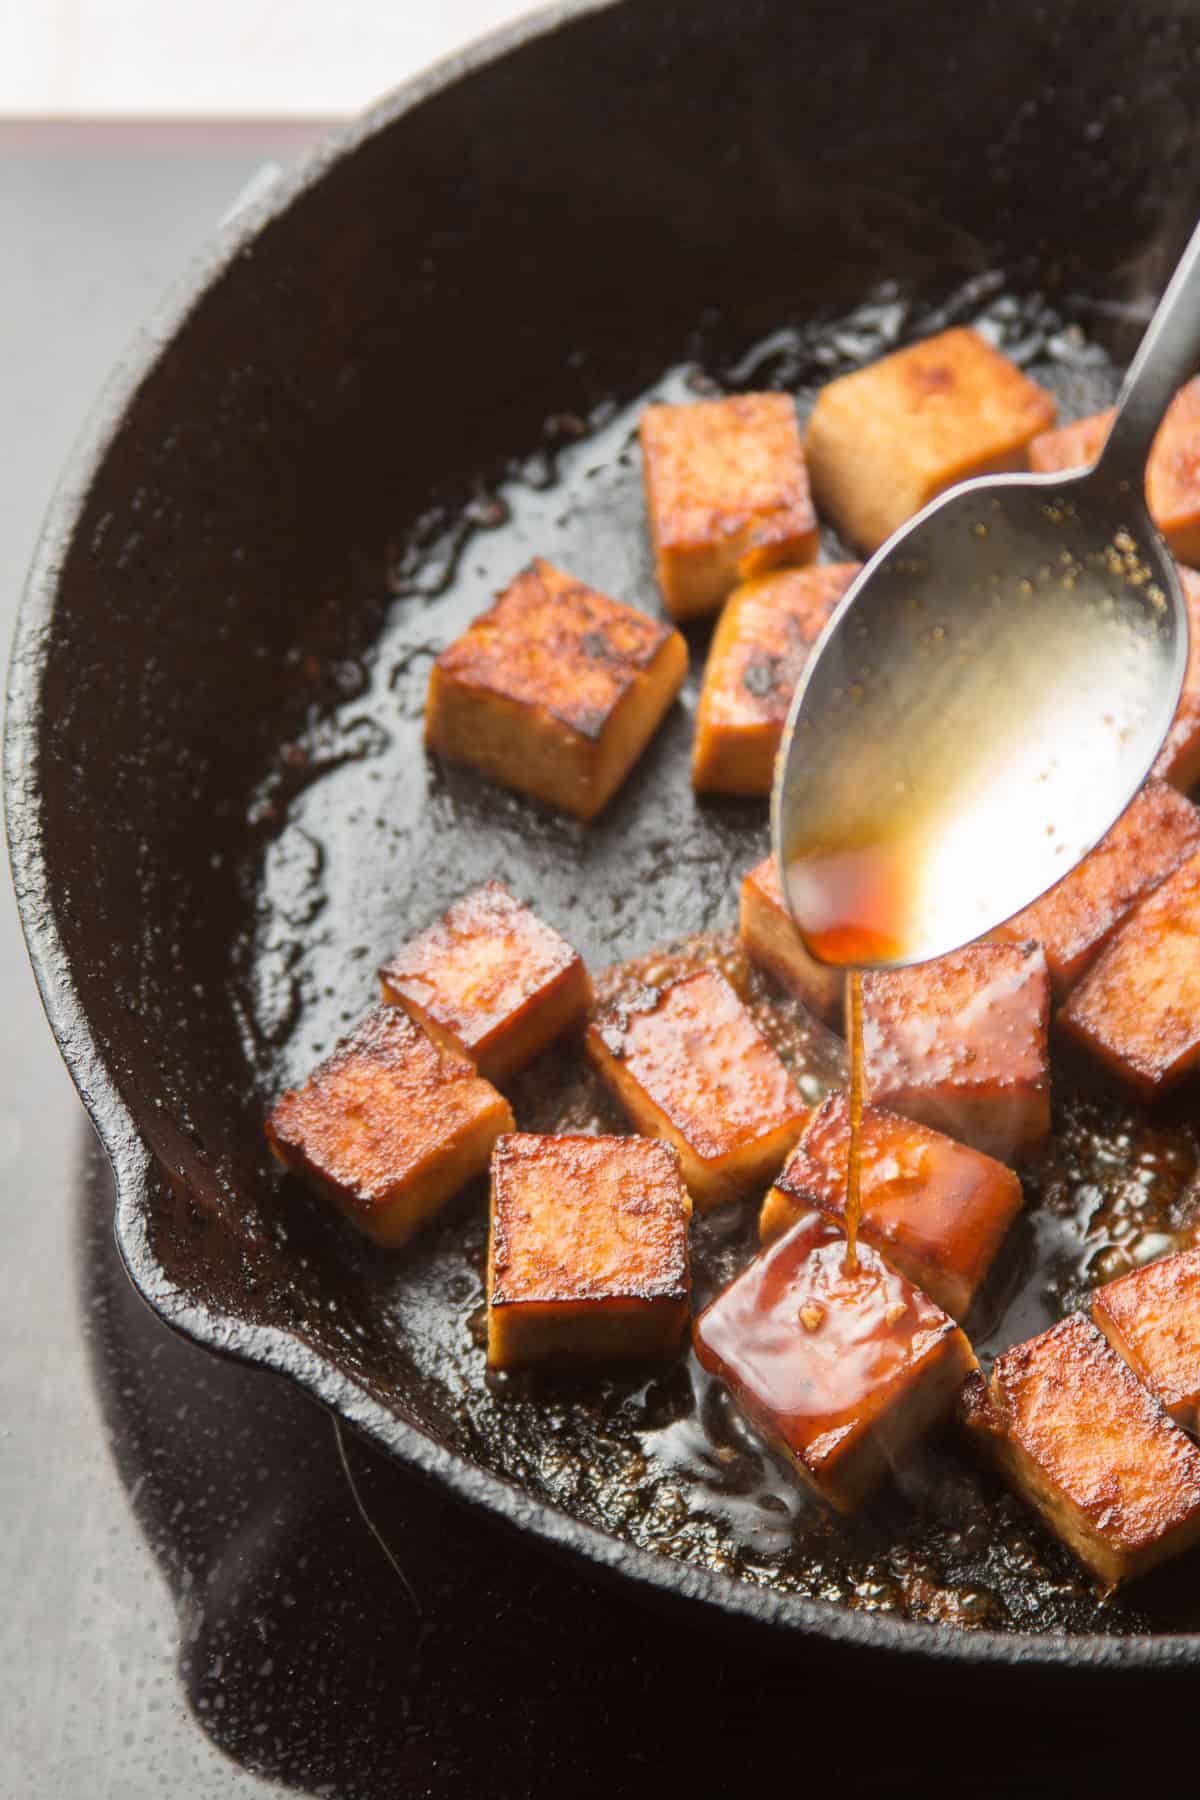 Spoon Drizzling Marinade Over Tofu Sizzling in a Skillet